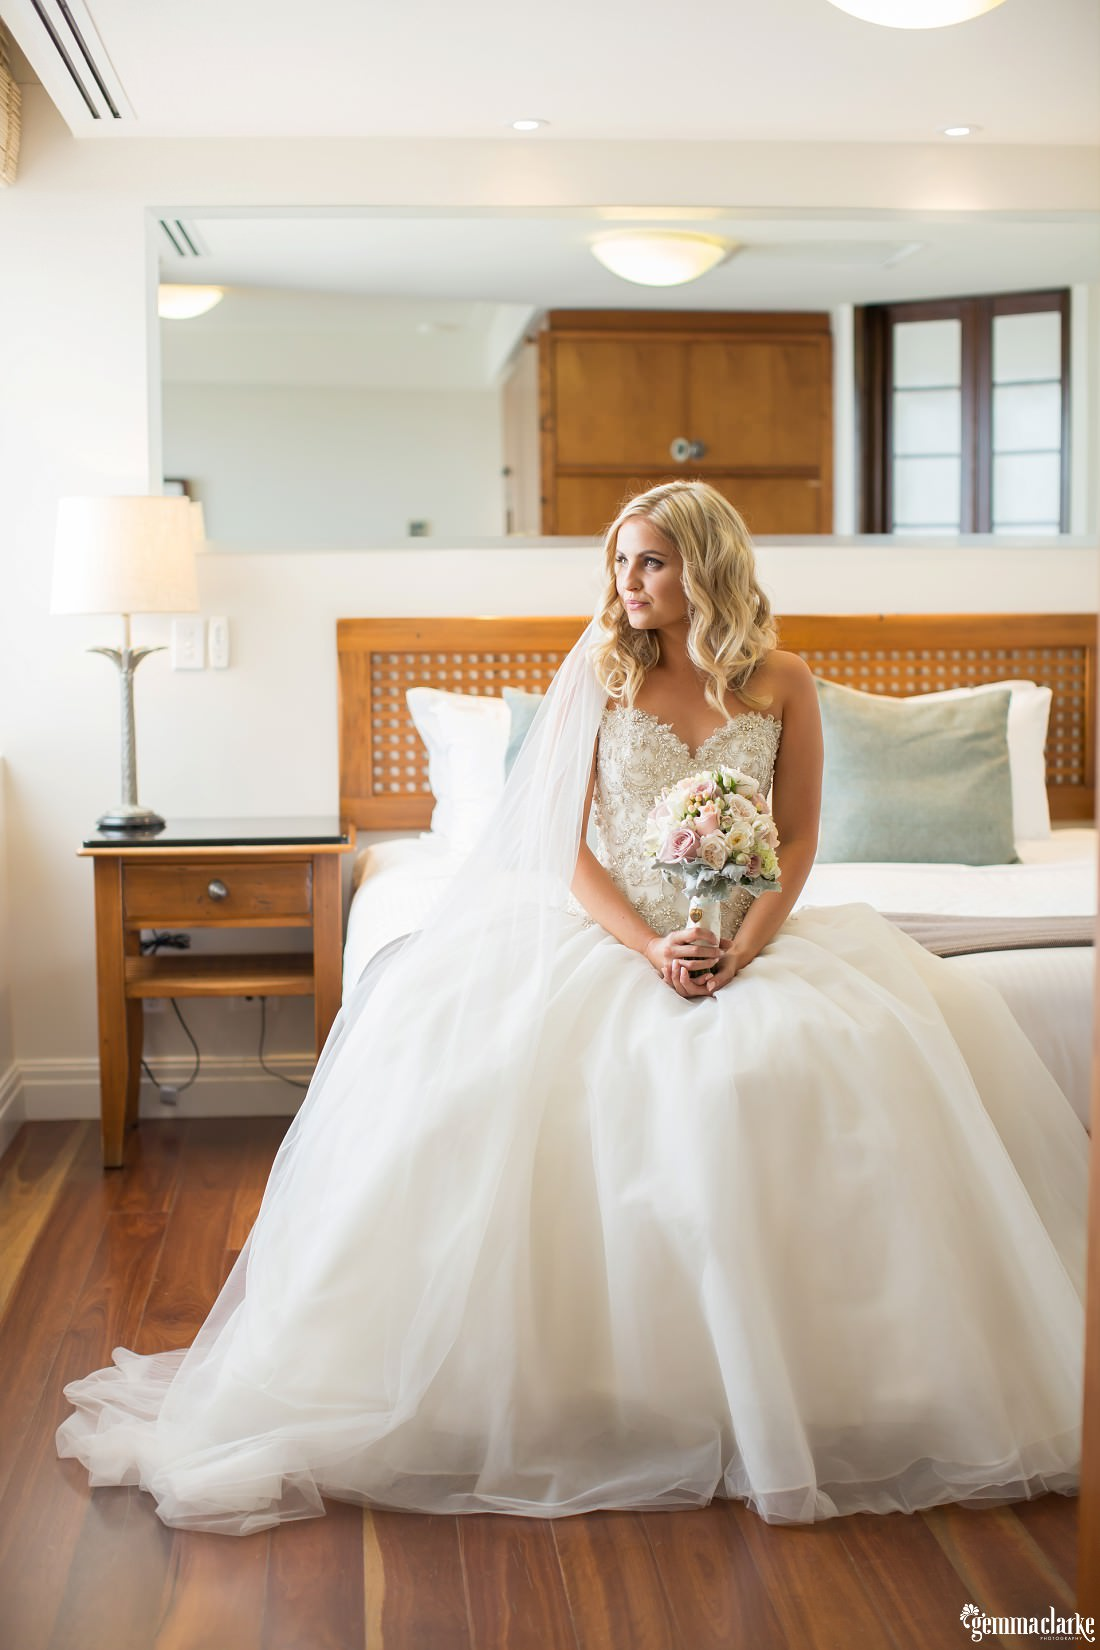 A bride in a white gown sitting on the end of a bed holding her lightly coloured floral bouquet